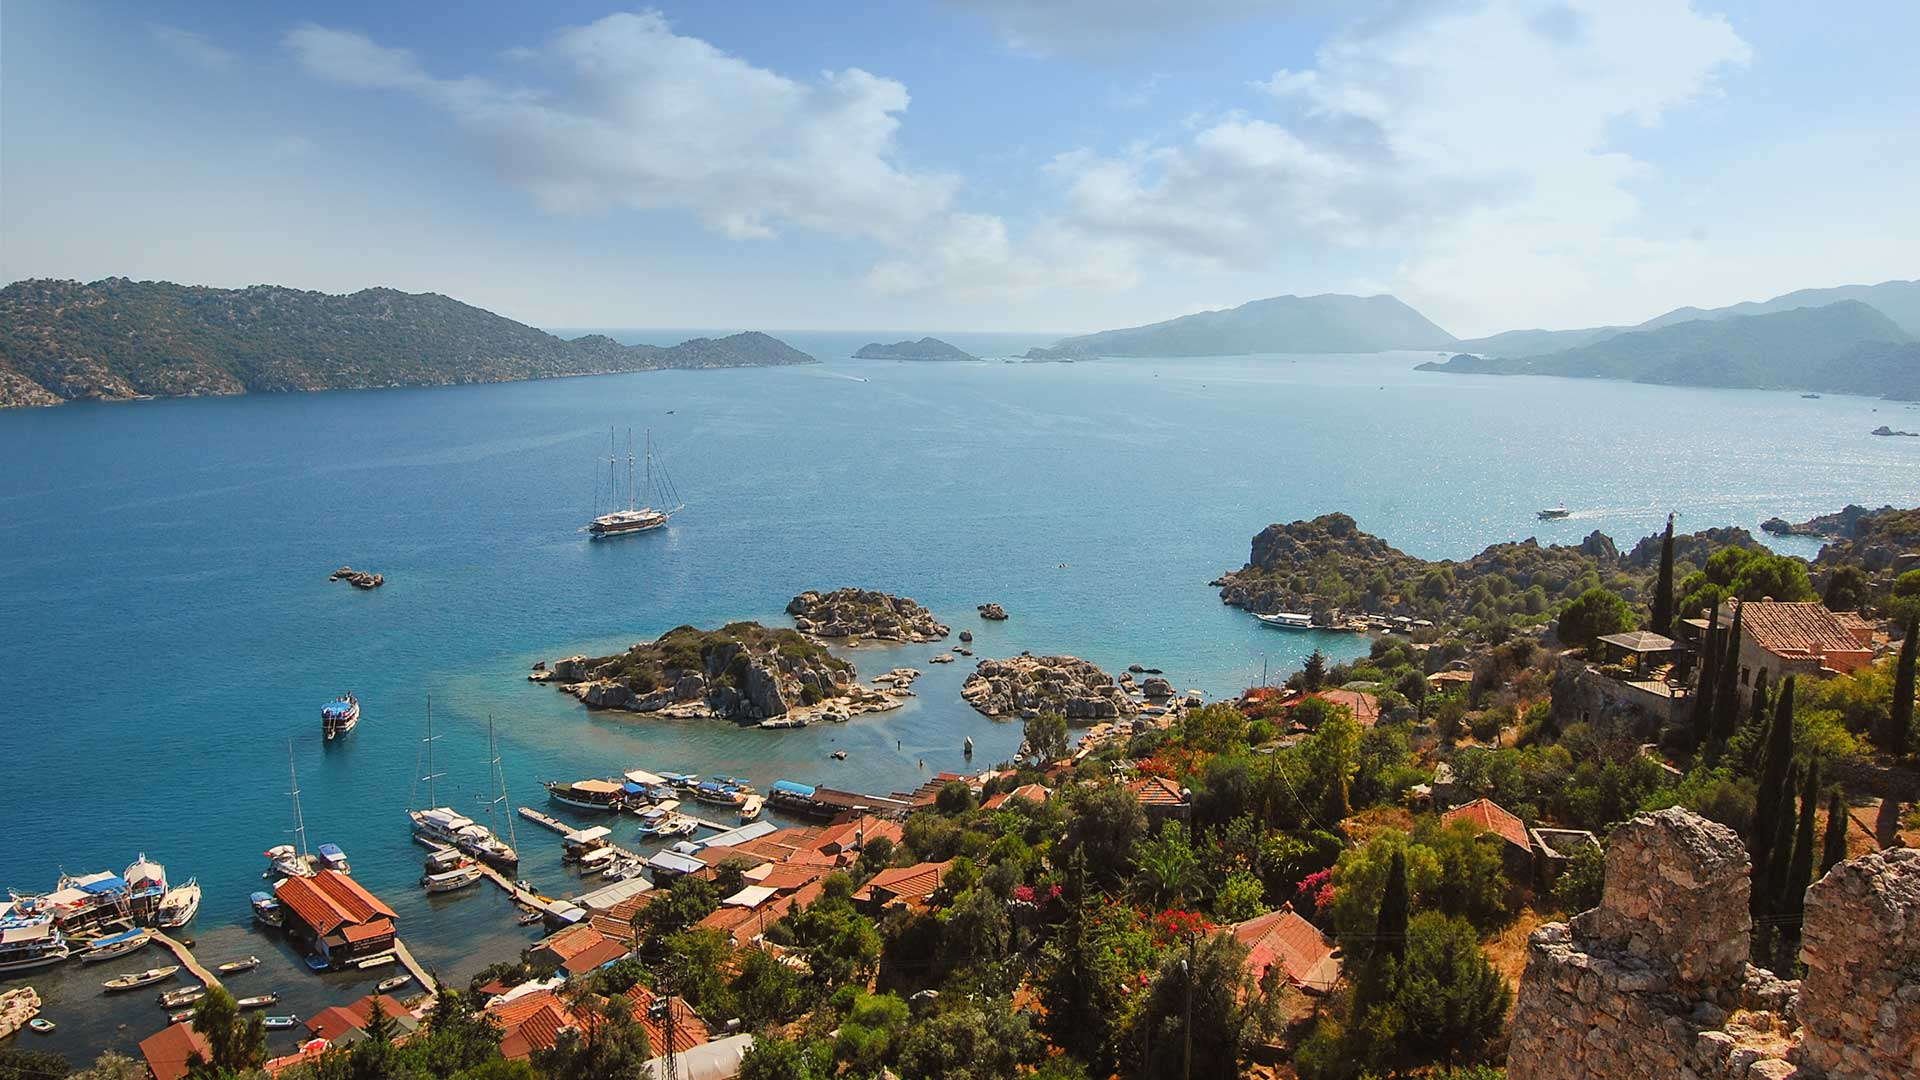 Panoramic view from the top of the castle in Kekova, Kalekoy, Turkey